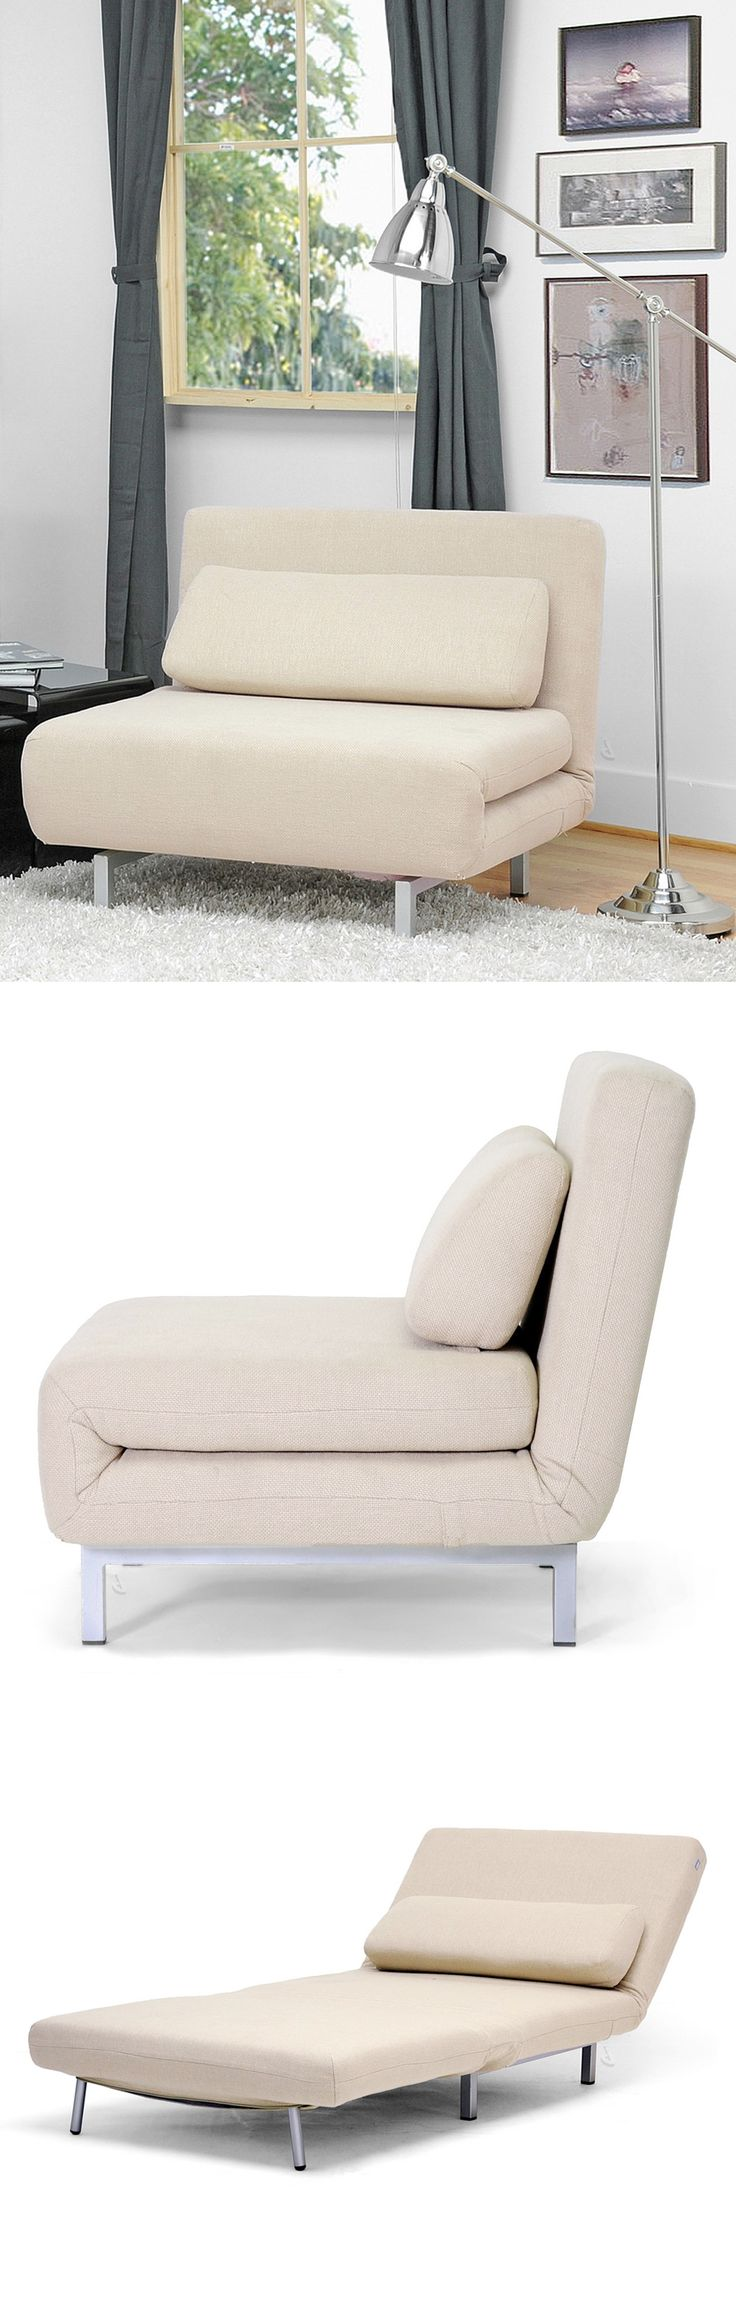 Comfy chair becomes a twin mattress sleeper in seconds #furniture_design